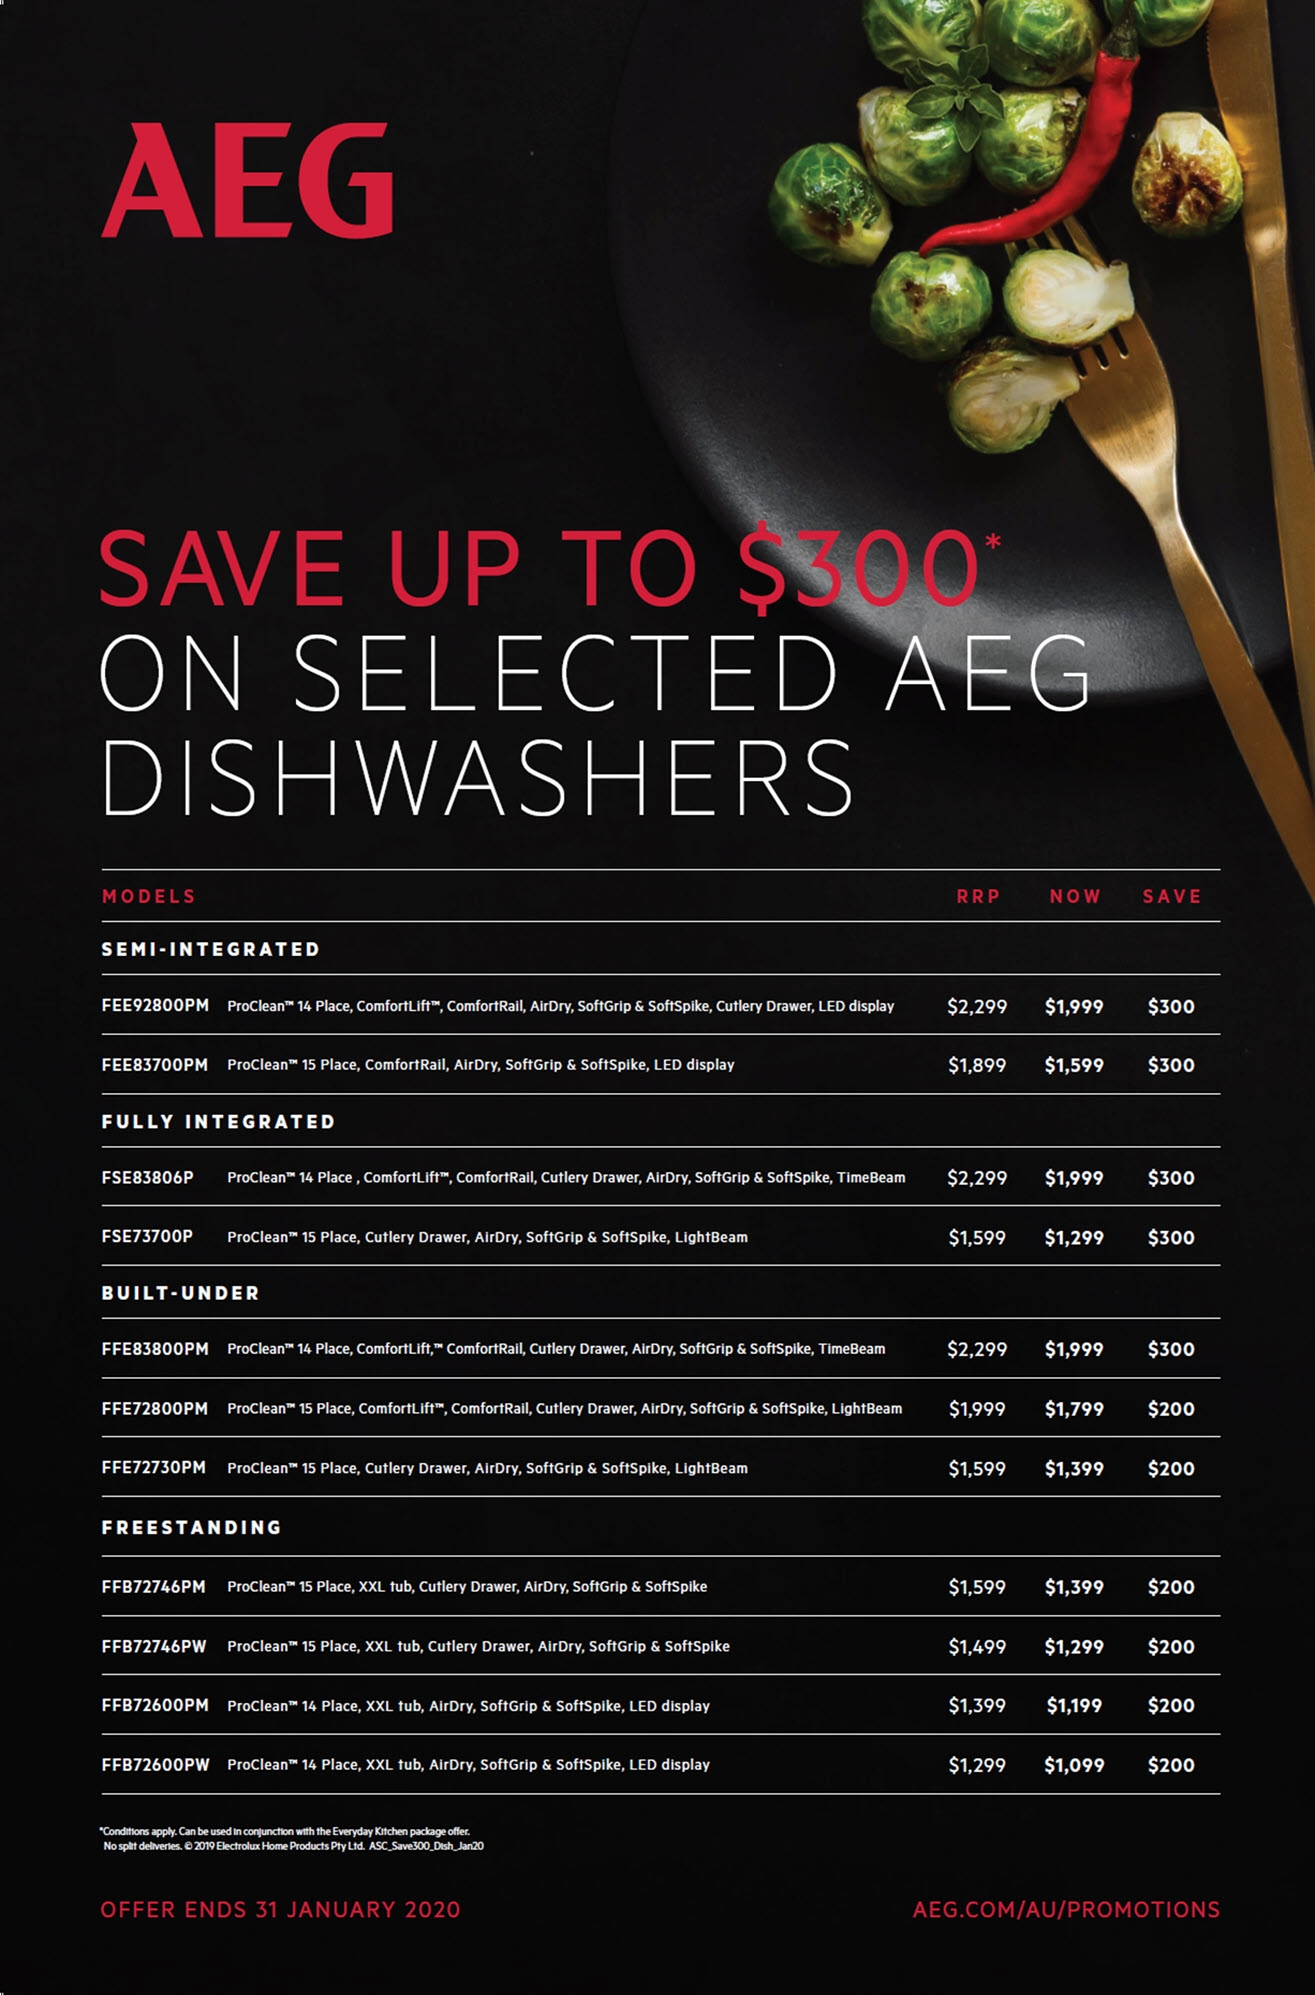 AEG Save $300 on Selected Dishwashers